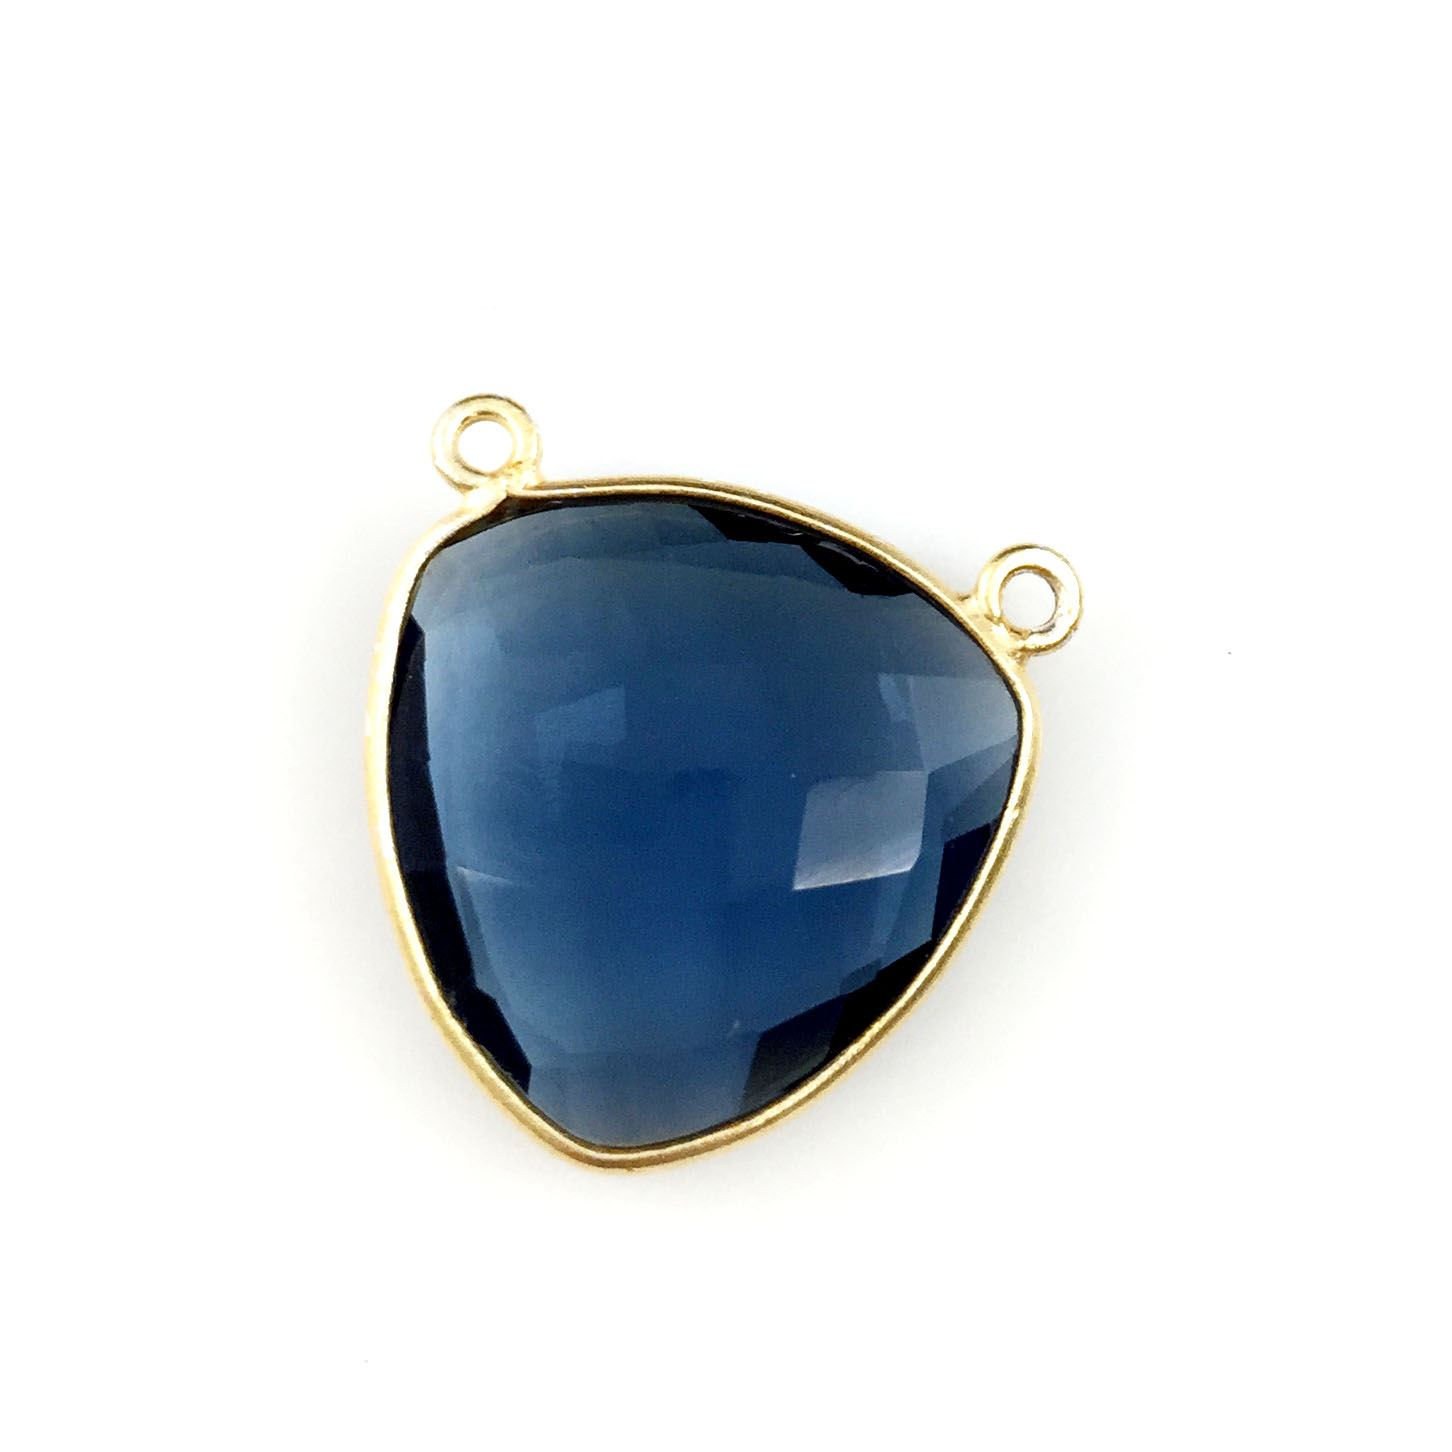 Bezel Gemstone Connector Pendant - Iolite Quartz - Gold plated Sterling Silver - Large Trillion Shaped Faceted - 18 mm - 1 piece